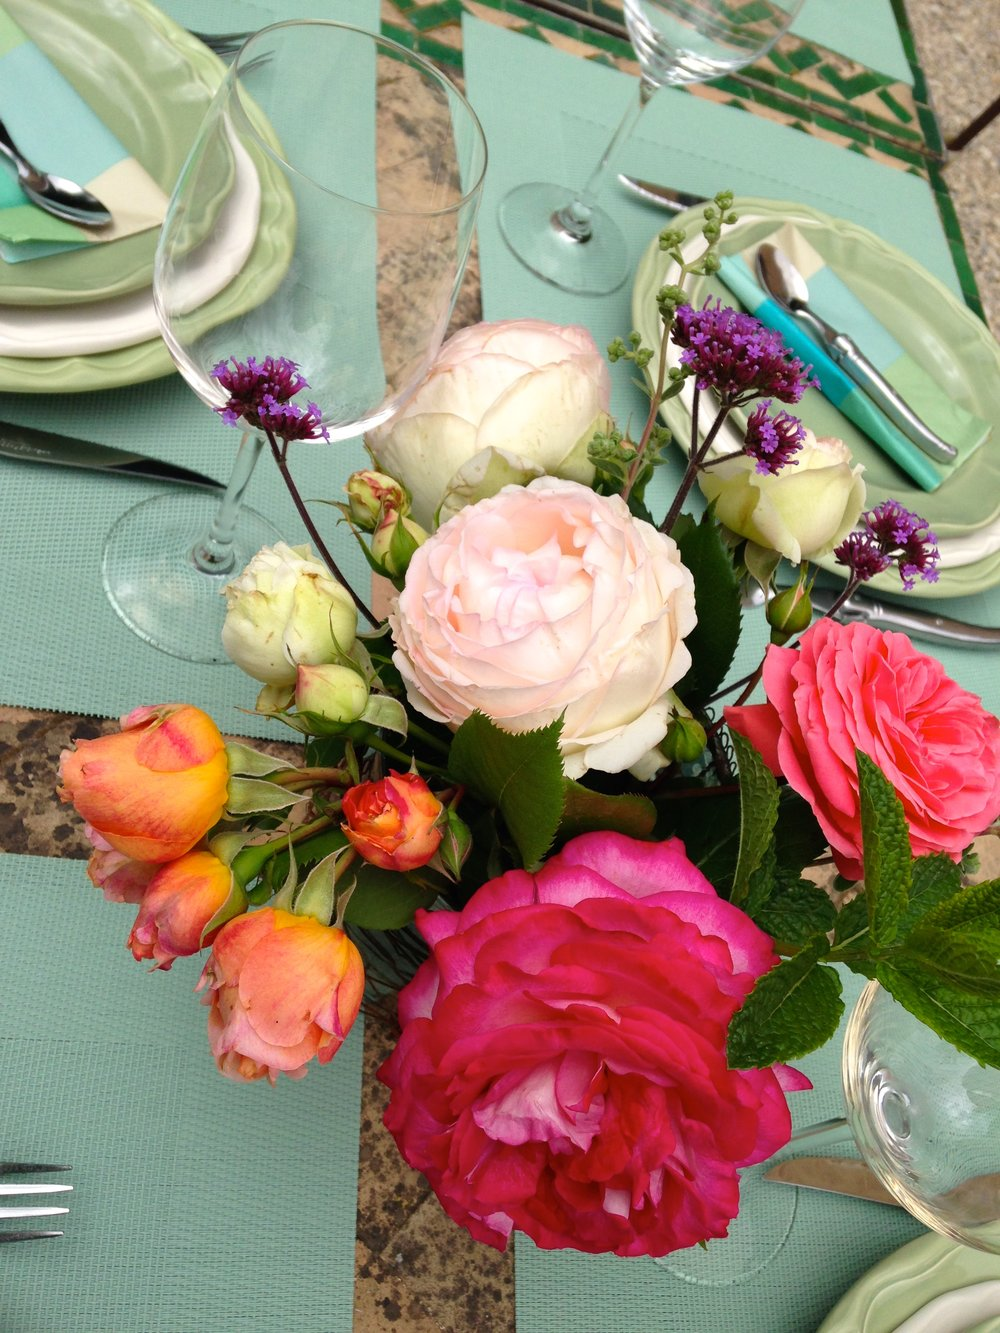 Flowers Table.JPG